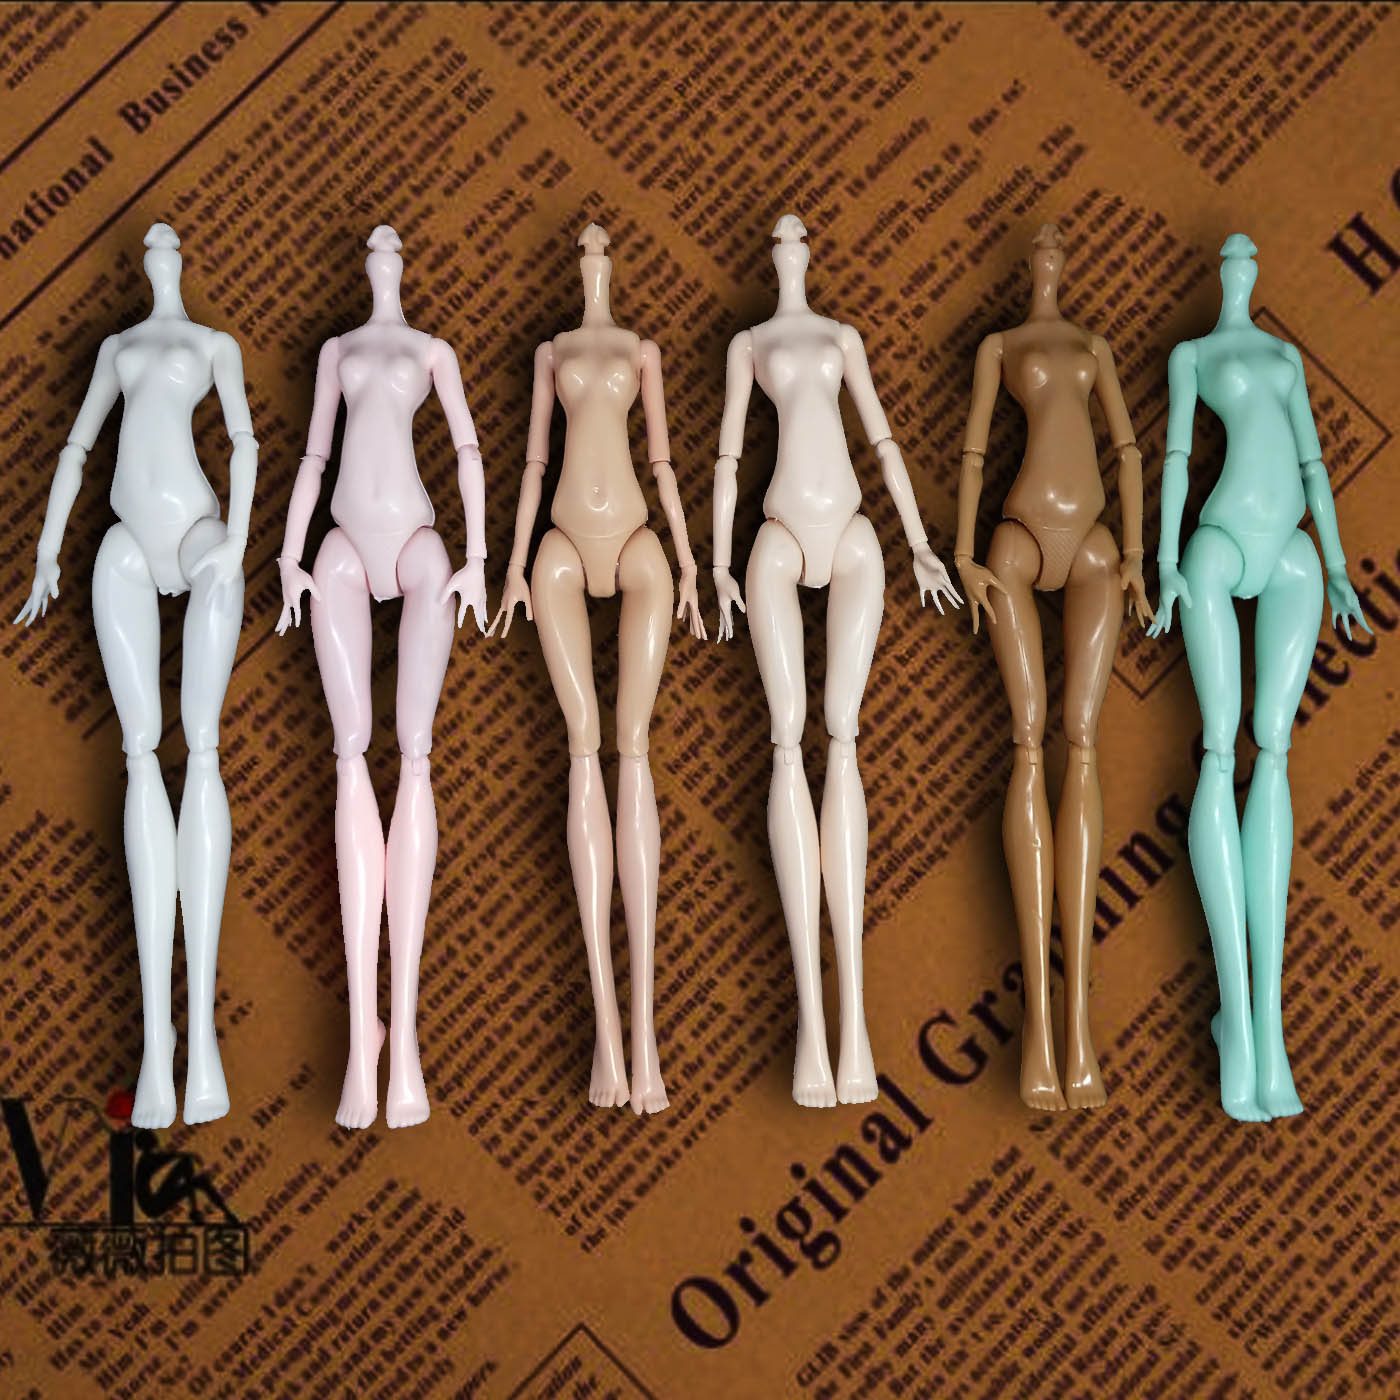 High Quality Imitation Demon Monster Dolls Nød Body uden hoved til Monster High Dolls DIY Fairytales Roterable Joints Doll